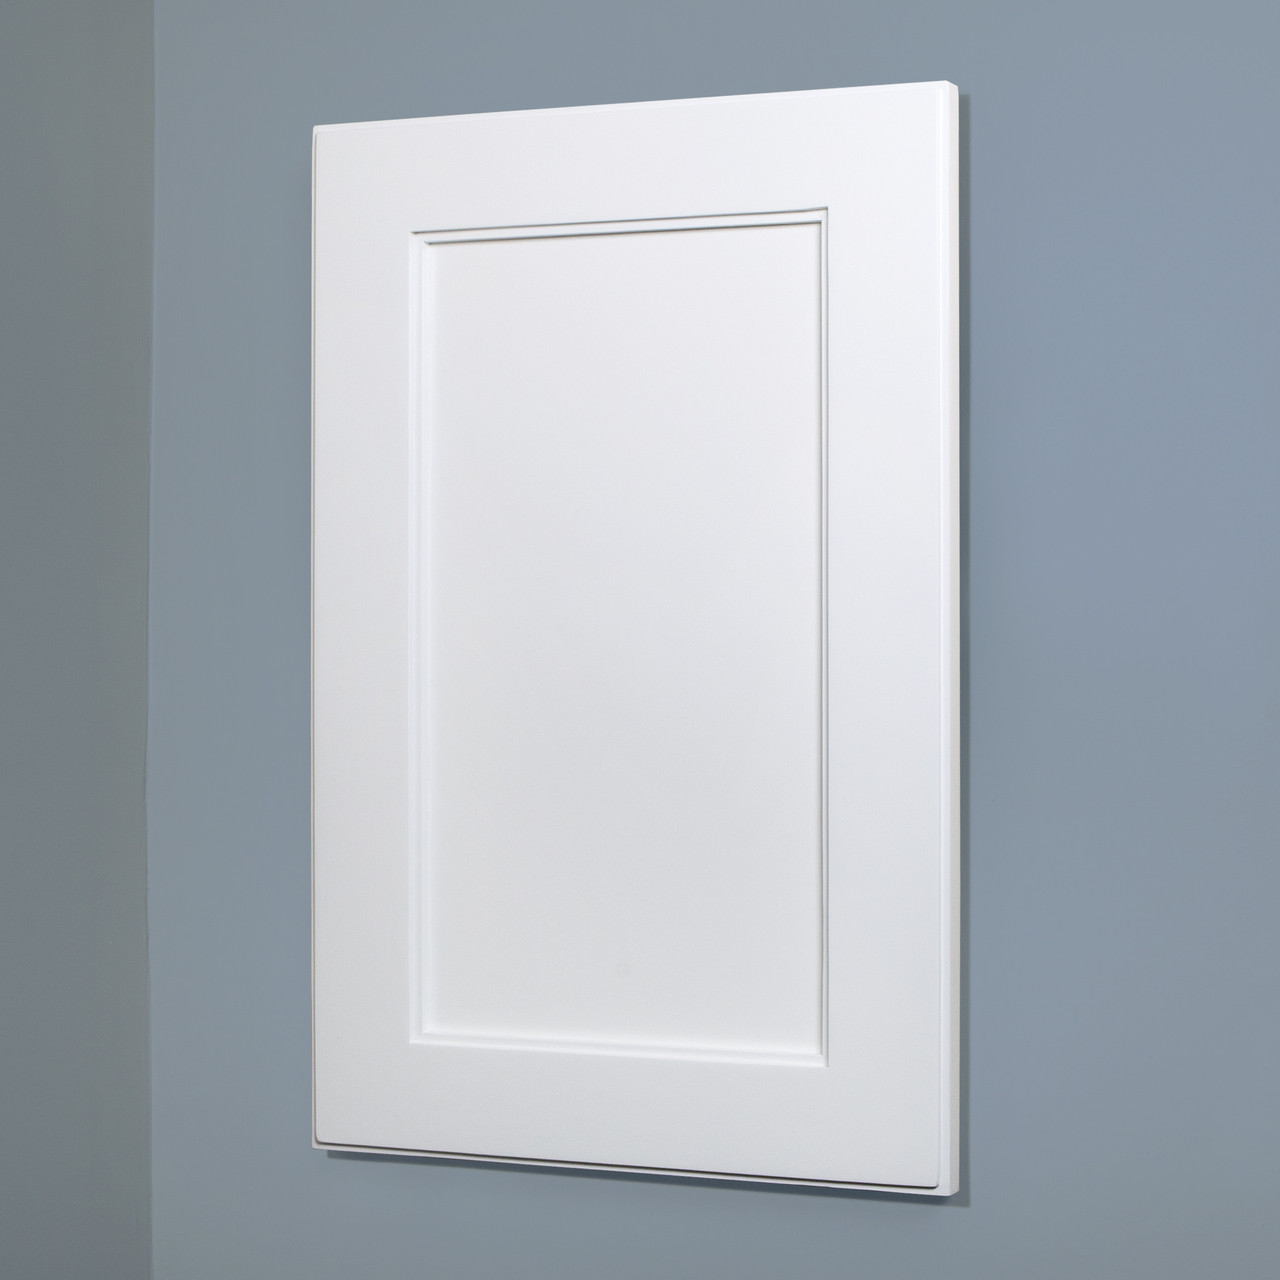 14x24 White Shaker Style Recessed Medicine Cabinet 14x24 Recessed In Wall Medicine Cabinets With No Mirrors